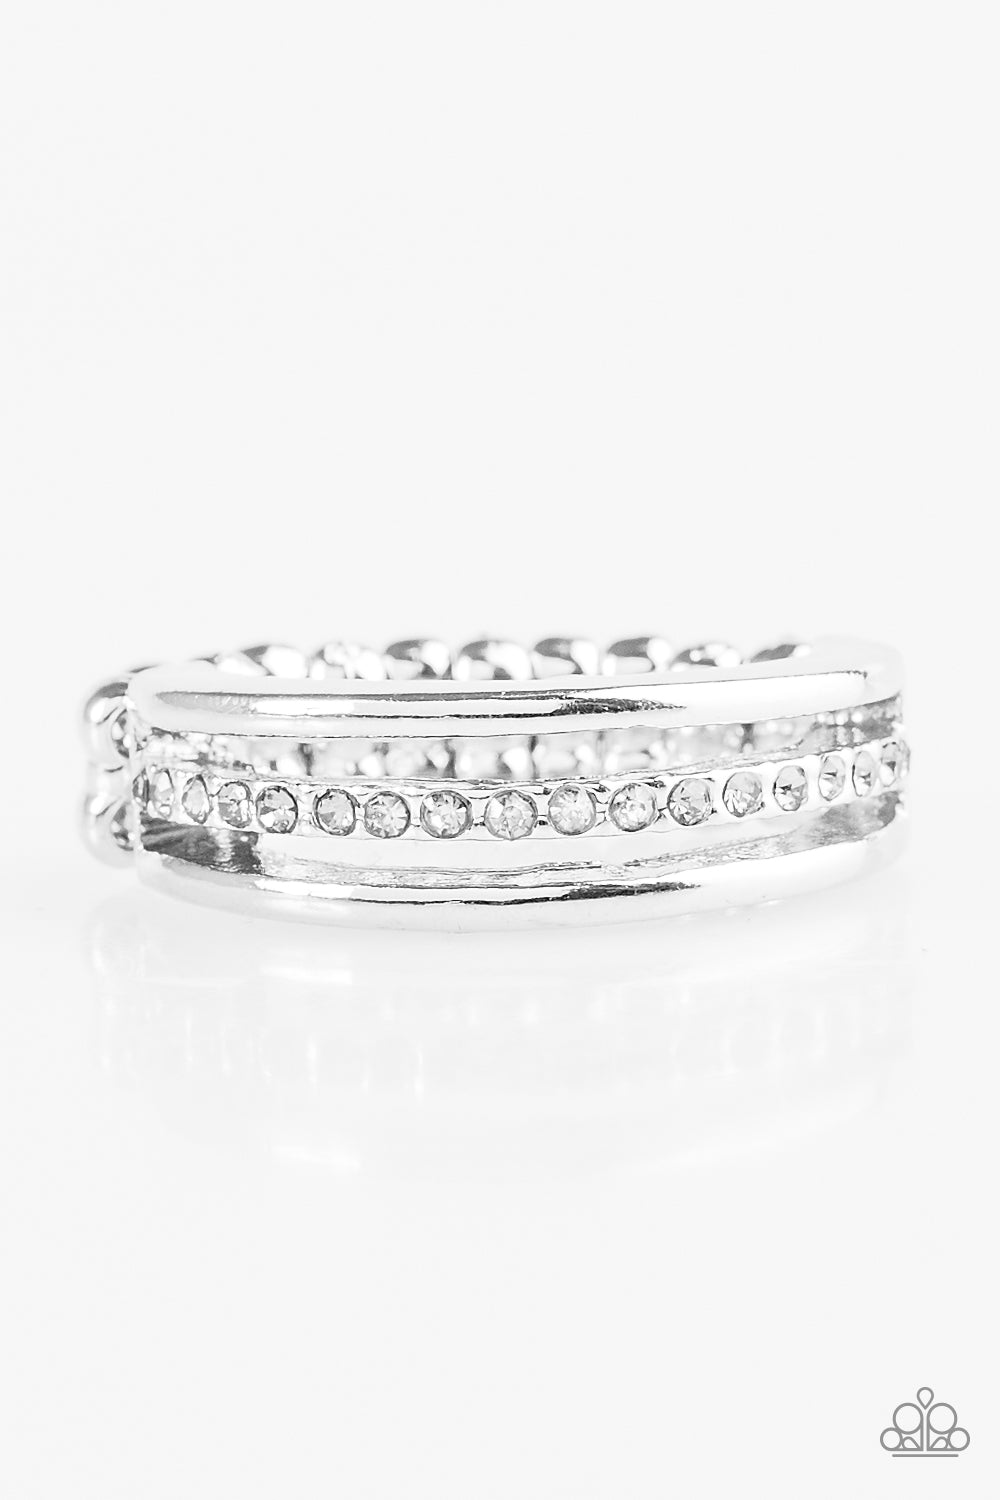 treasures wedding classic jewellers ring little sterling online women for silver rings men flat plain band bands